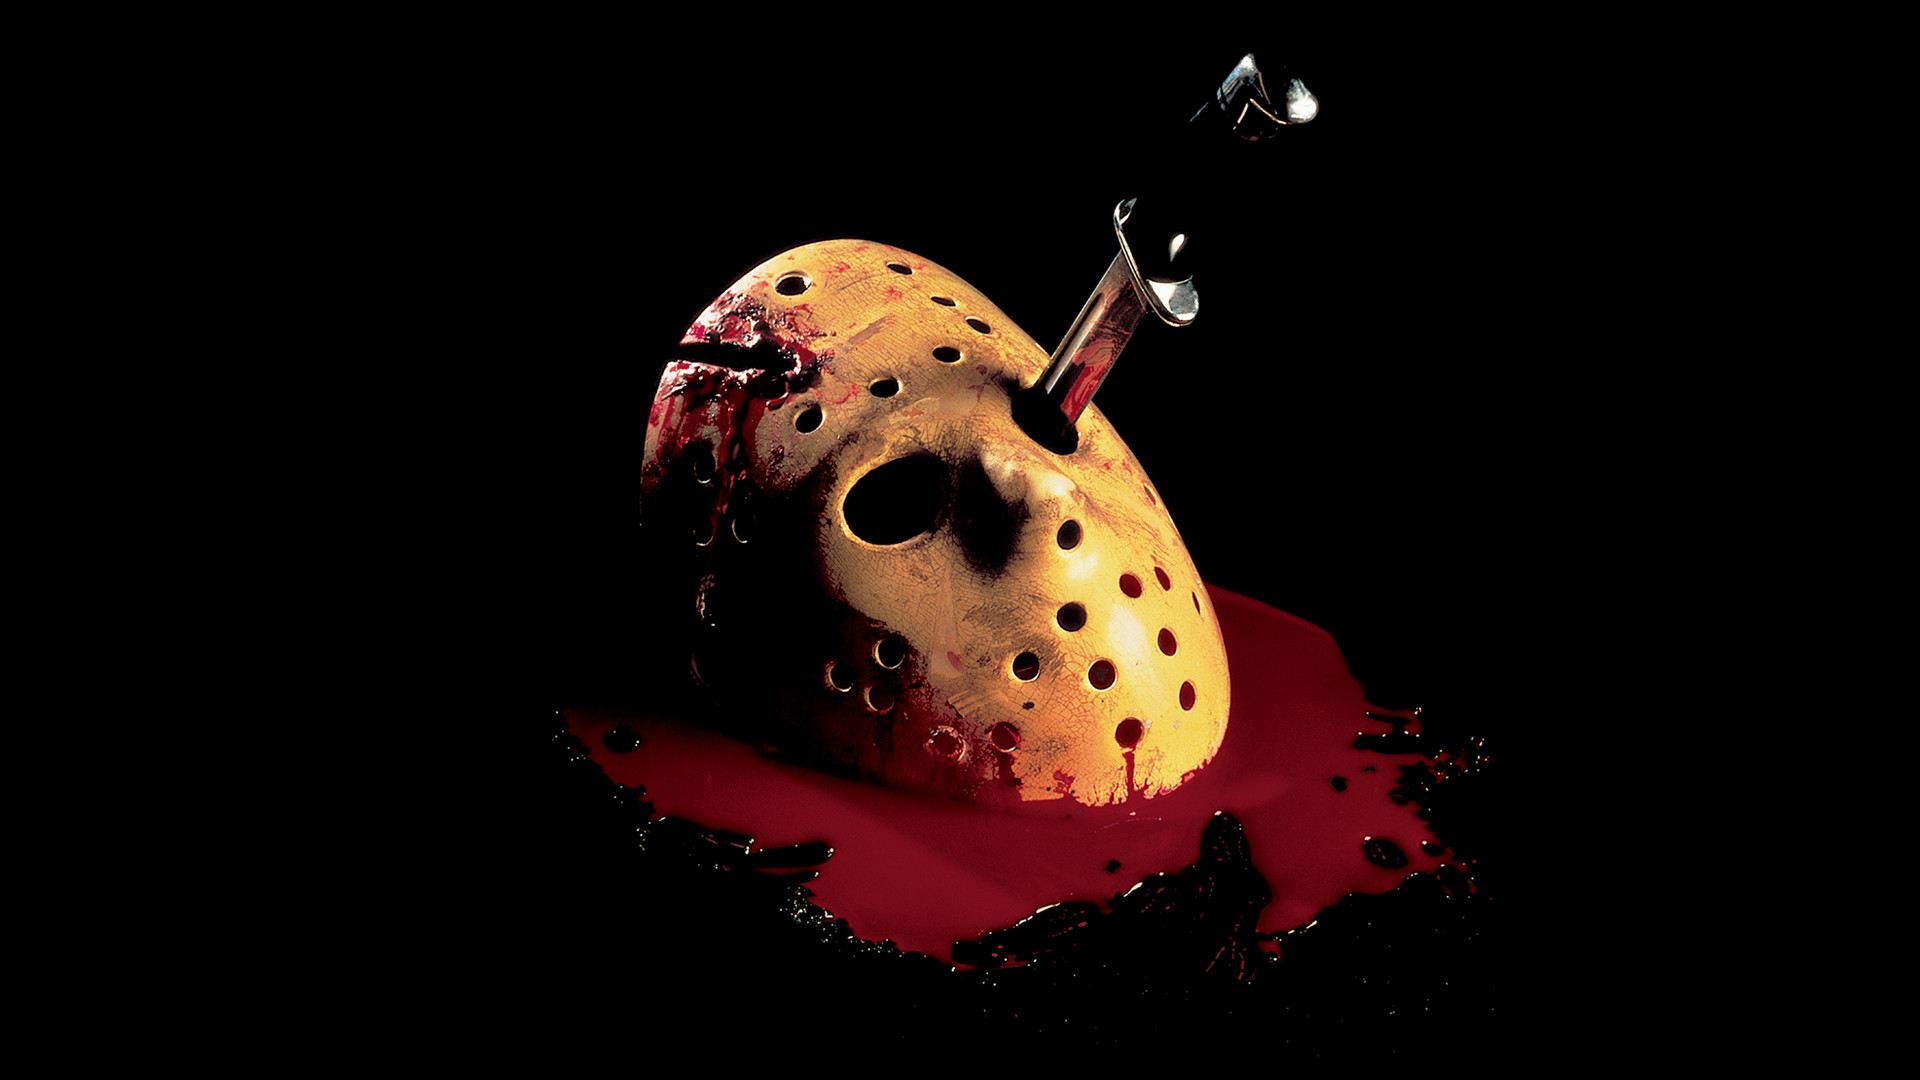 Res: 1920x1080, 1 Friday the 13th: The Final Chapter HD Wallpapers | Background Images -  Wallpaper Abyss